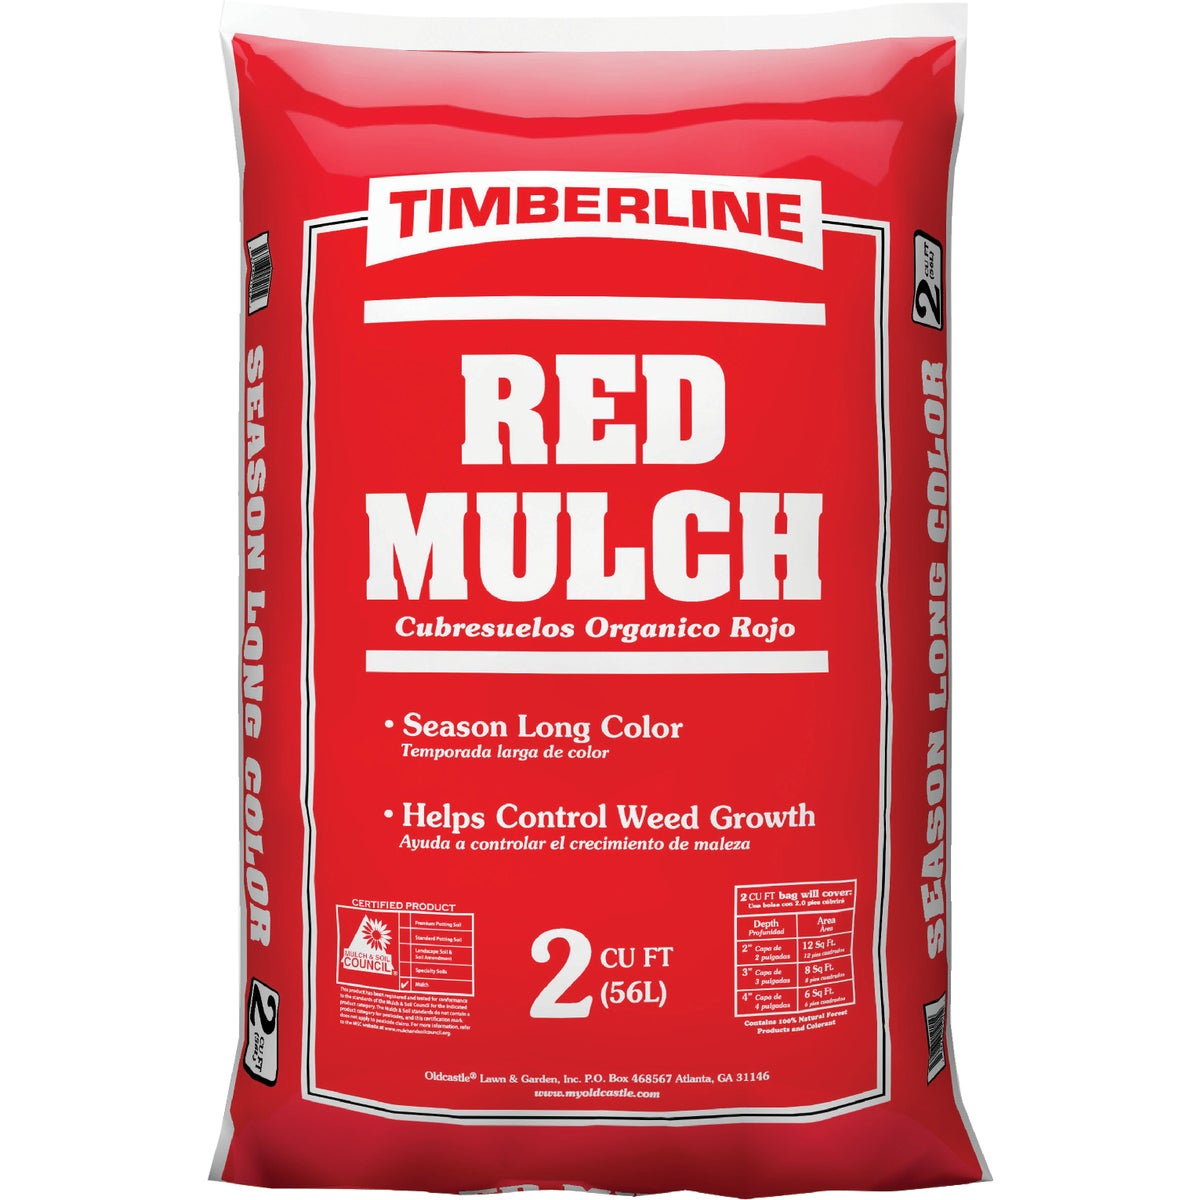 2CUFT RED SHREDDED MULCH - CMR02H by Old Castle Retail